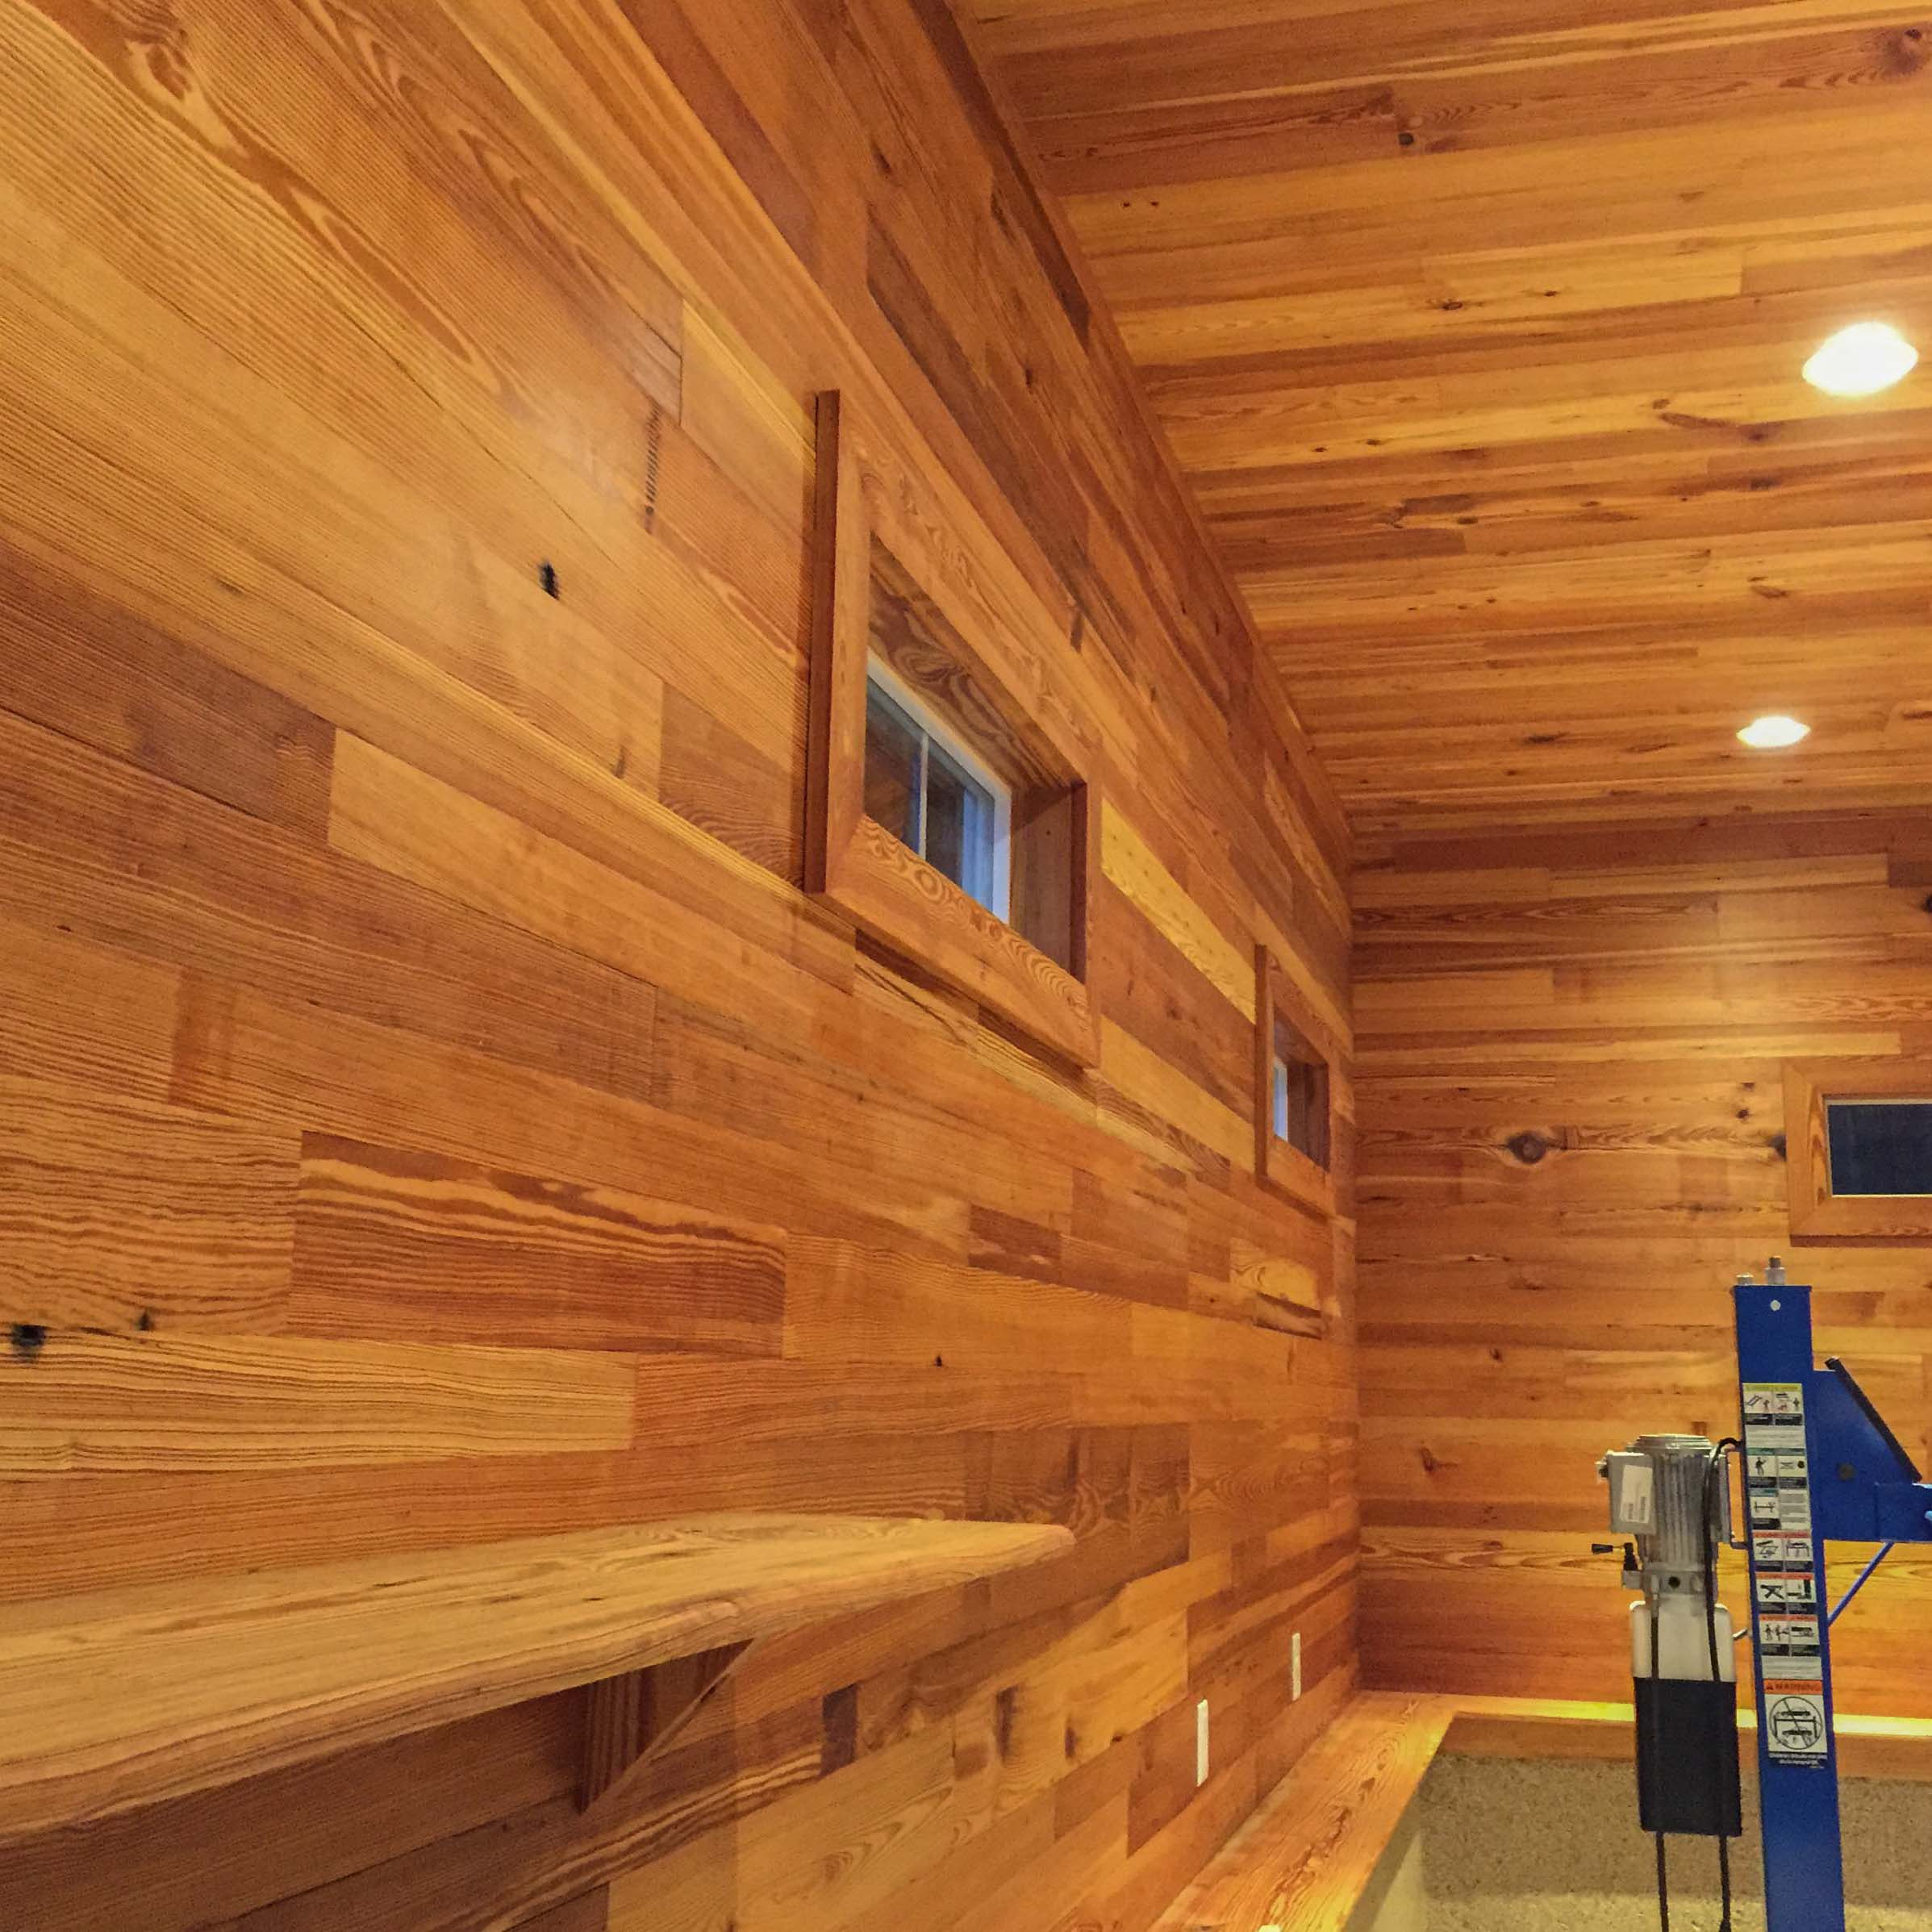 Boards And Beams Longleaf Lumber - Reclaimed Heart Pine Chestnut Paneling